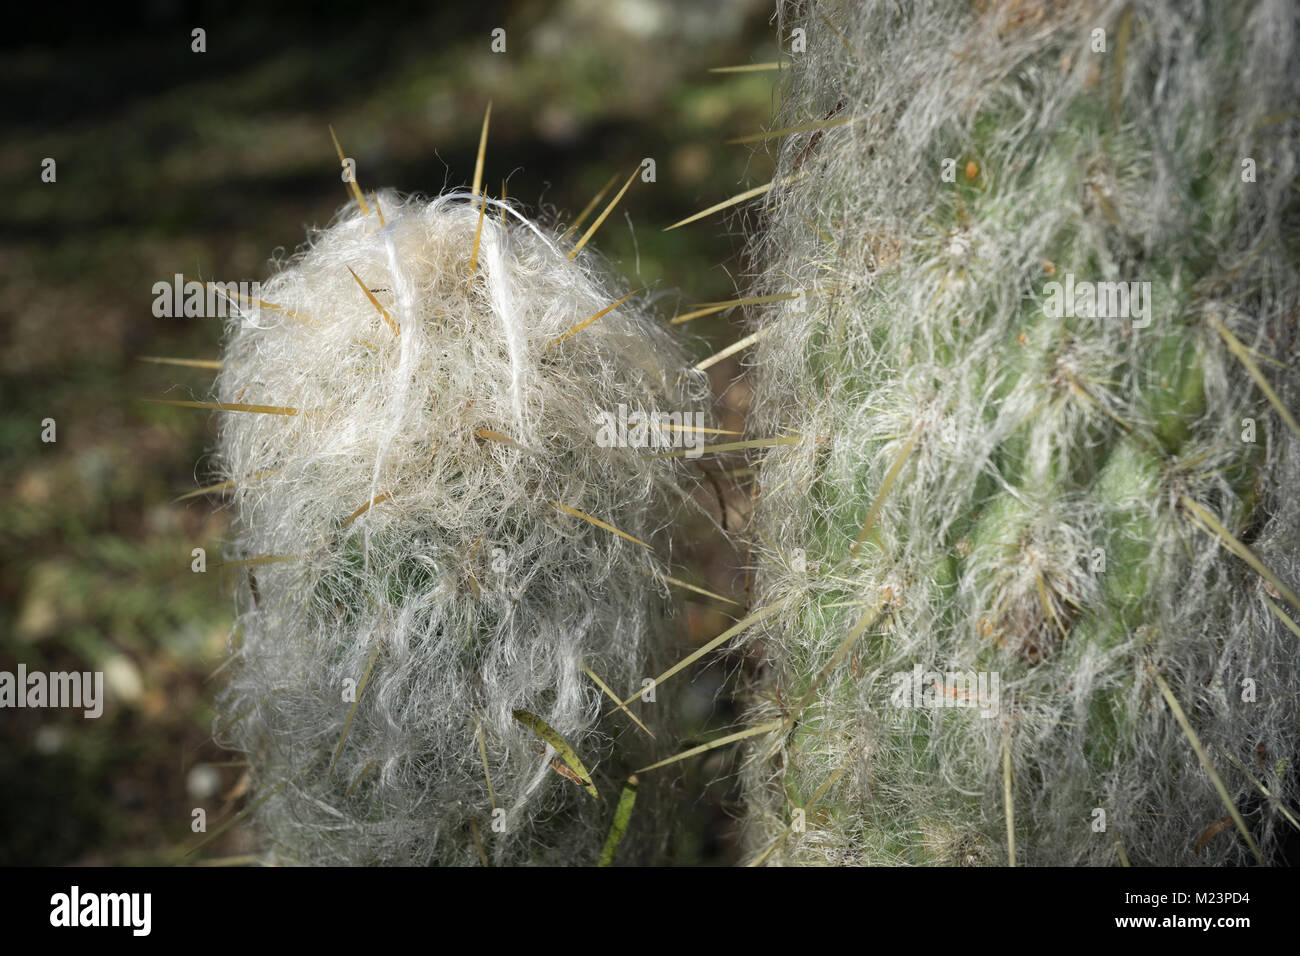 From a weekend visit to the botanical garden, macro shots this hairy cactus that looks like a little creature. Espostoa - Stock Image